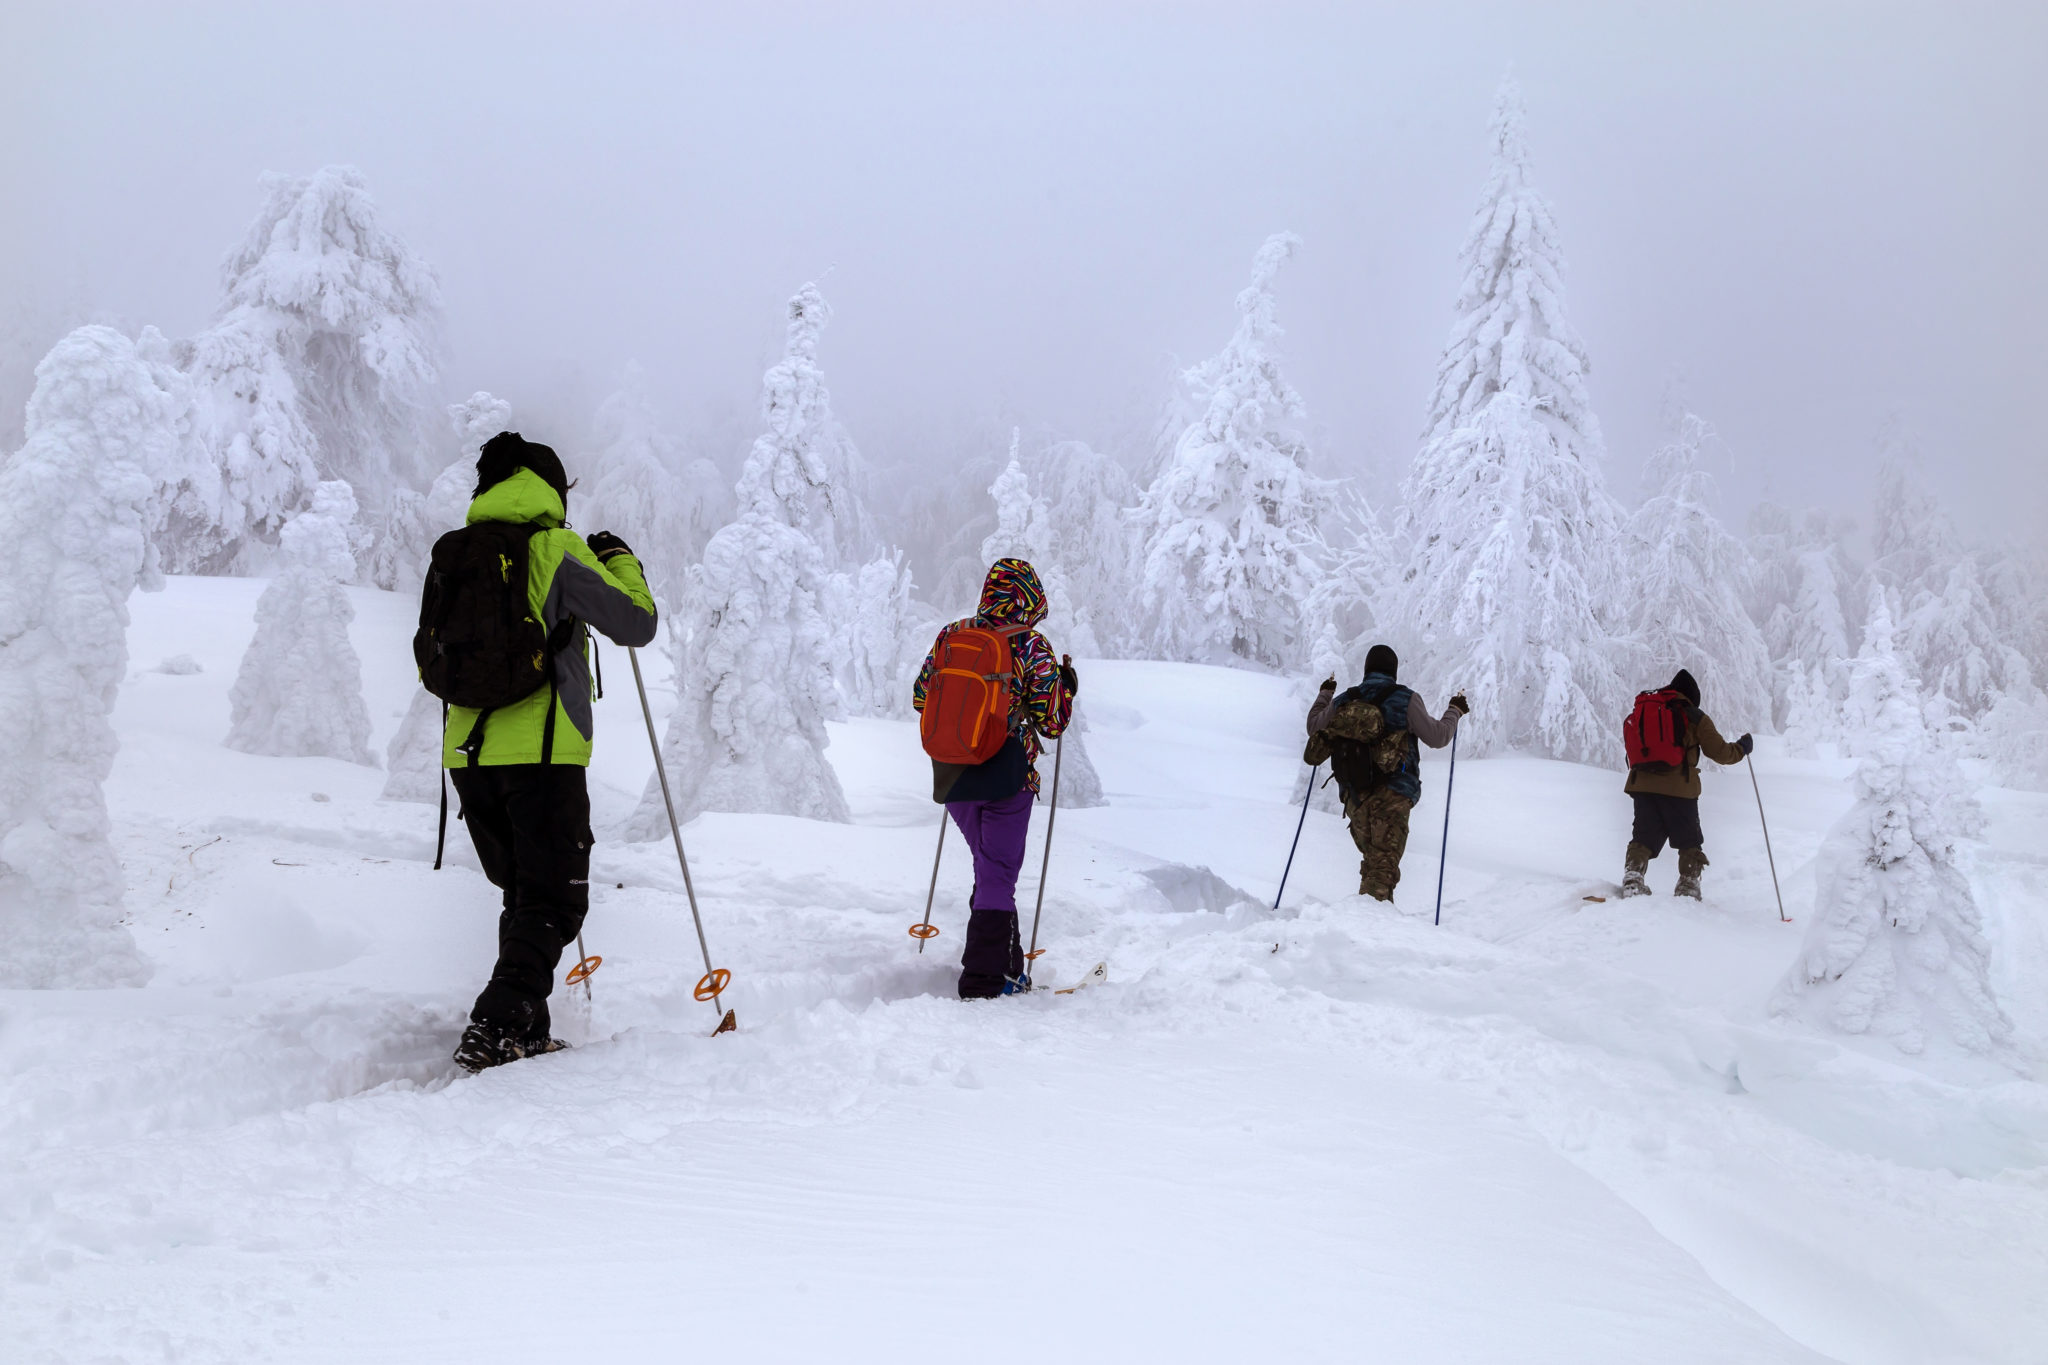 Four skiers make the trip to the mountains of the Southern Urals.